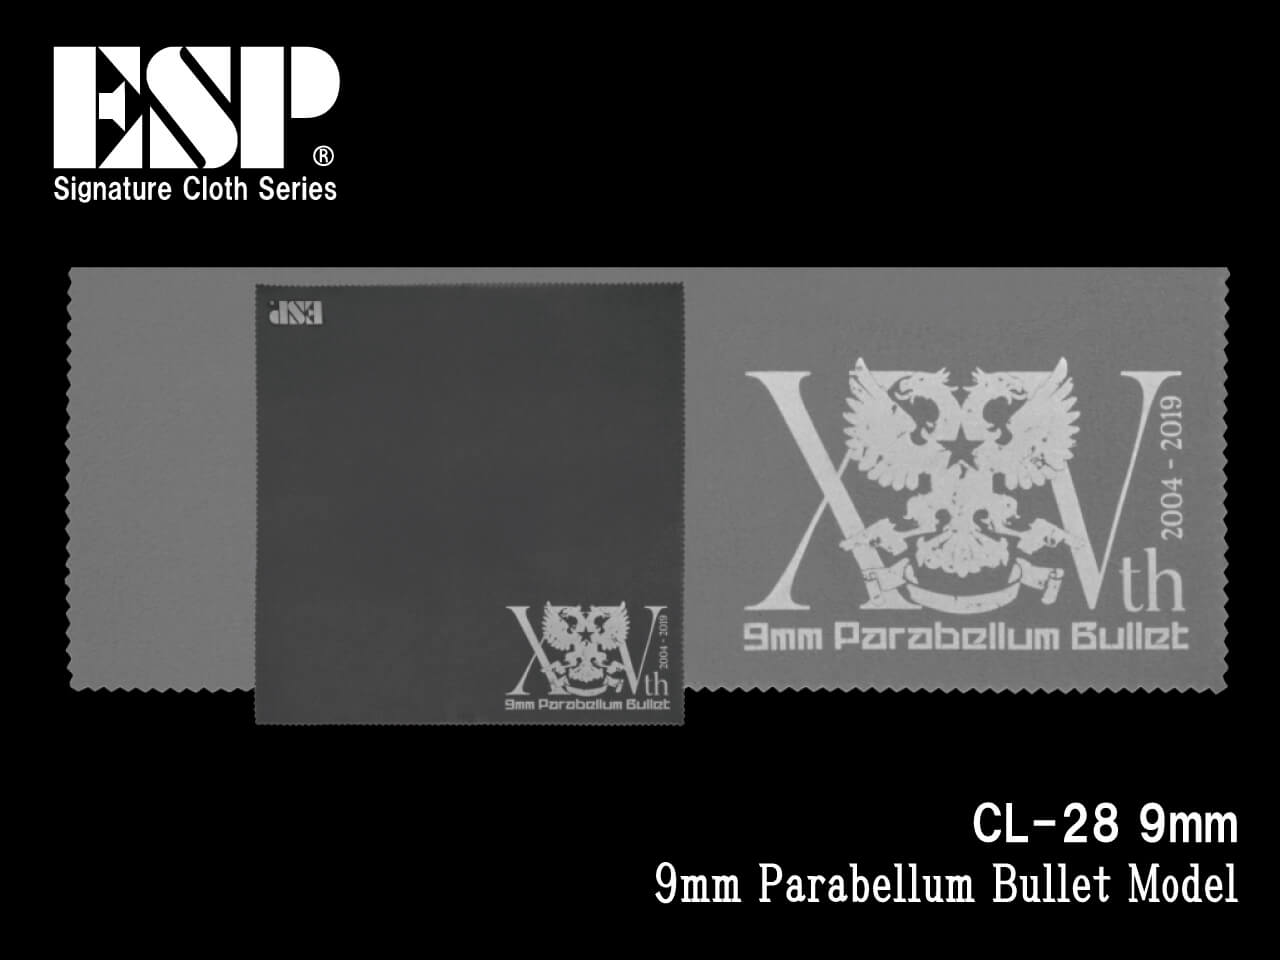 ESP(イーエスピー) Signature Cloth CL-28 9mm (9mm Parabellum Bullet Model)